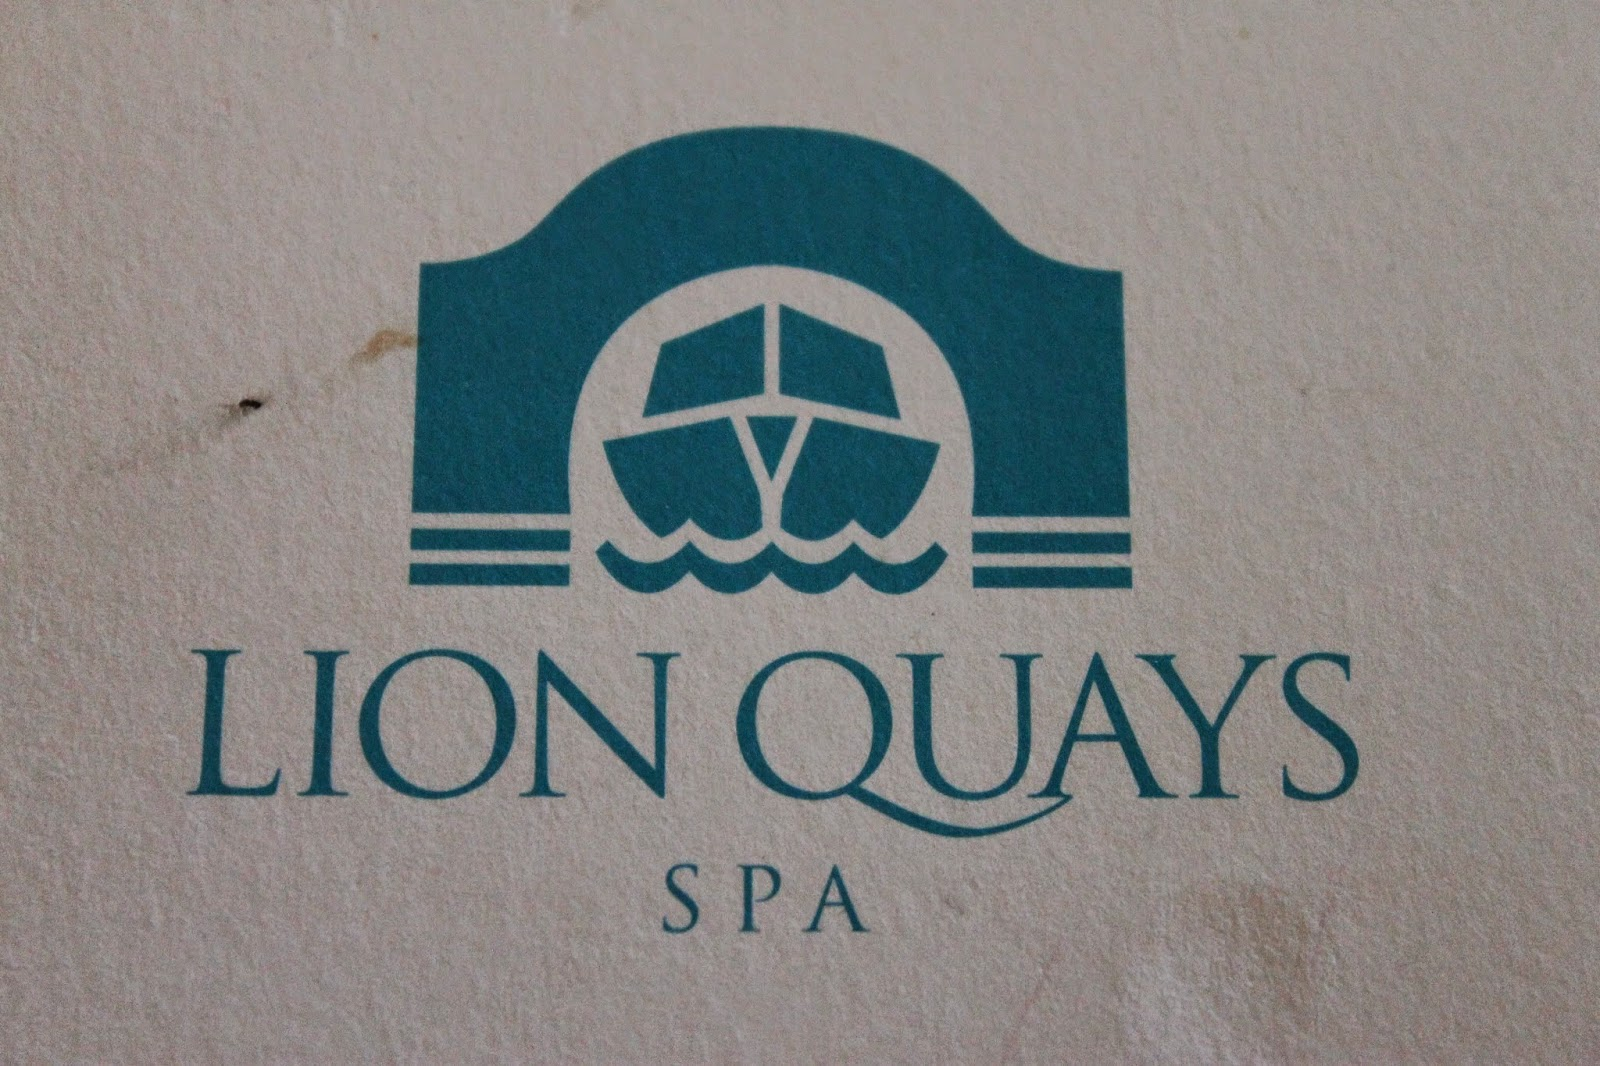 Lion Quays Spa Oswestry